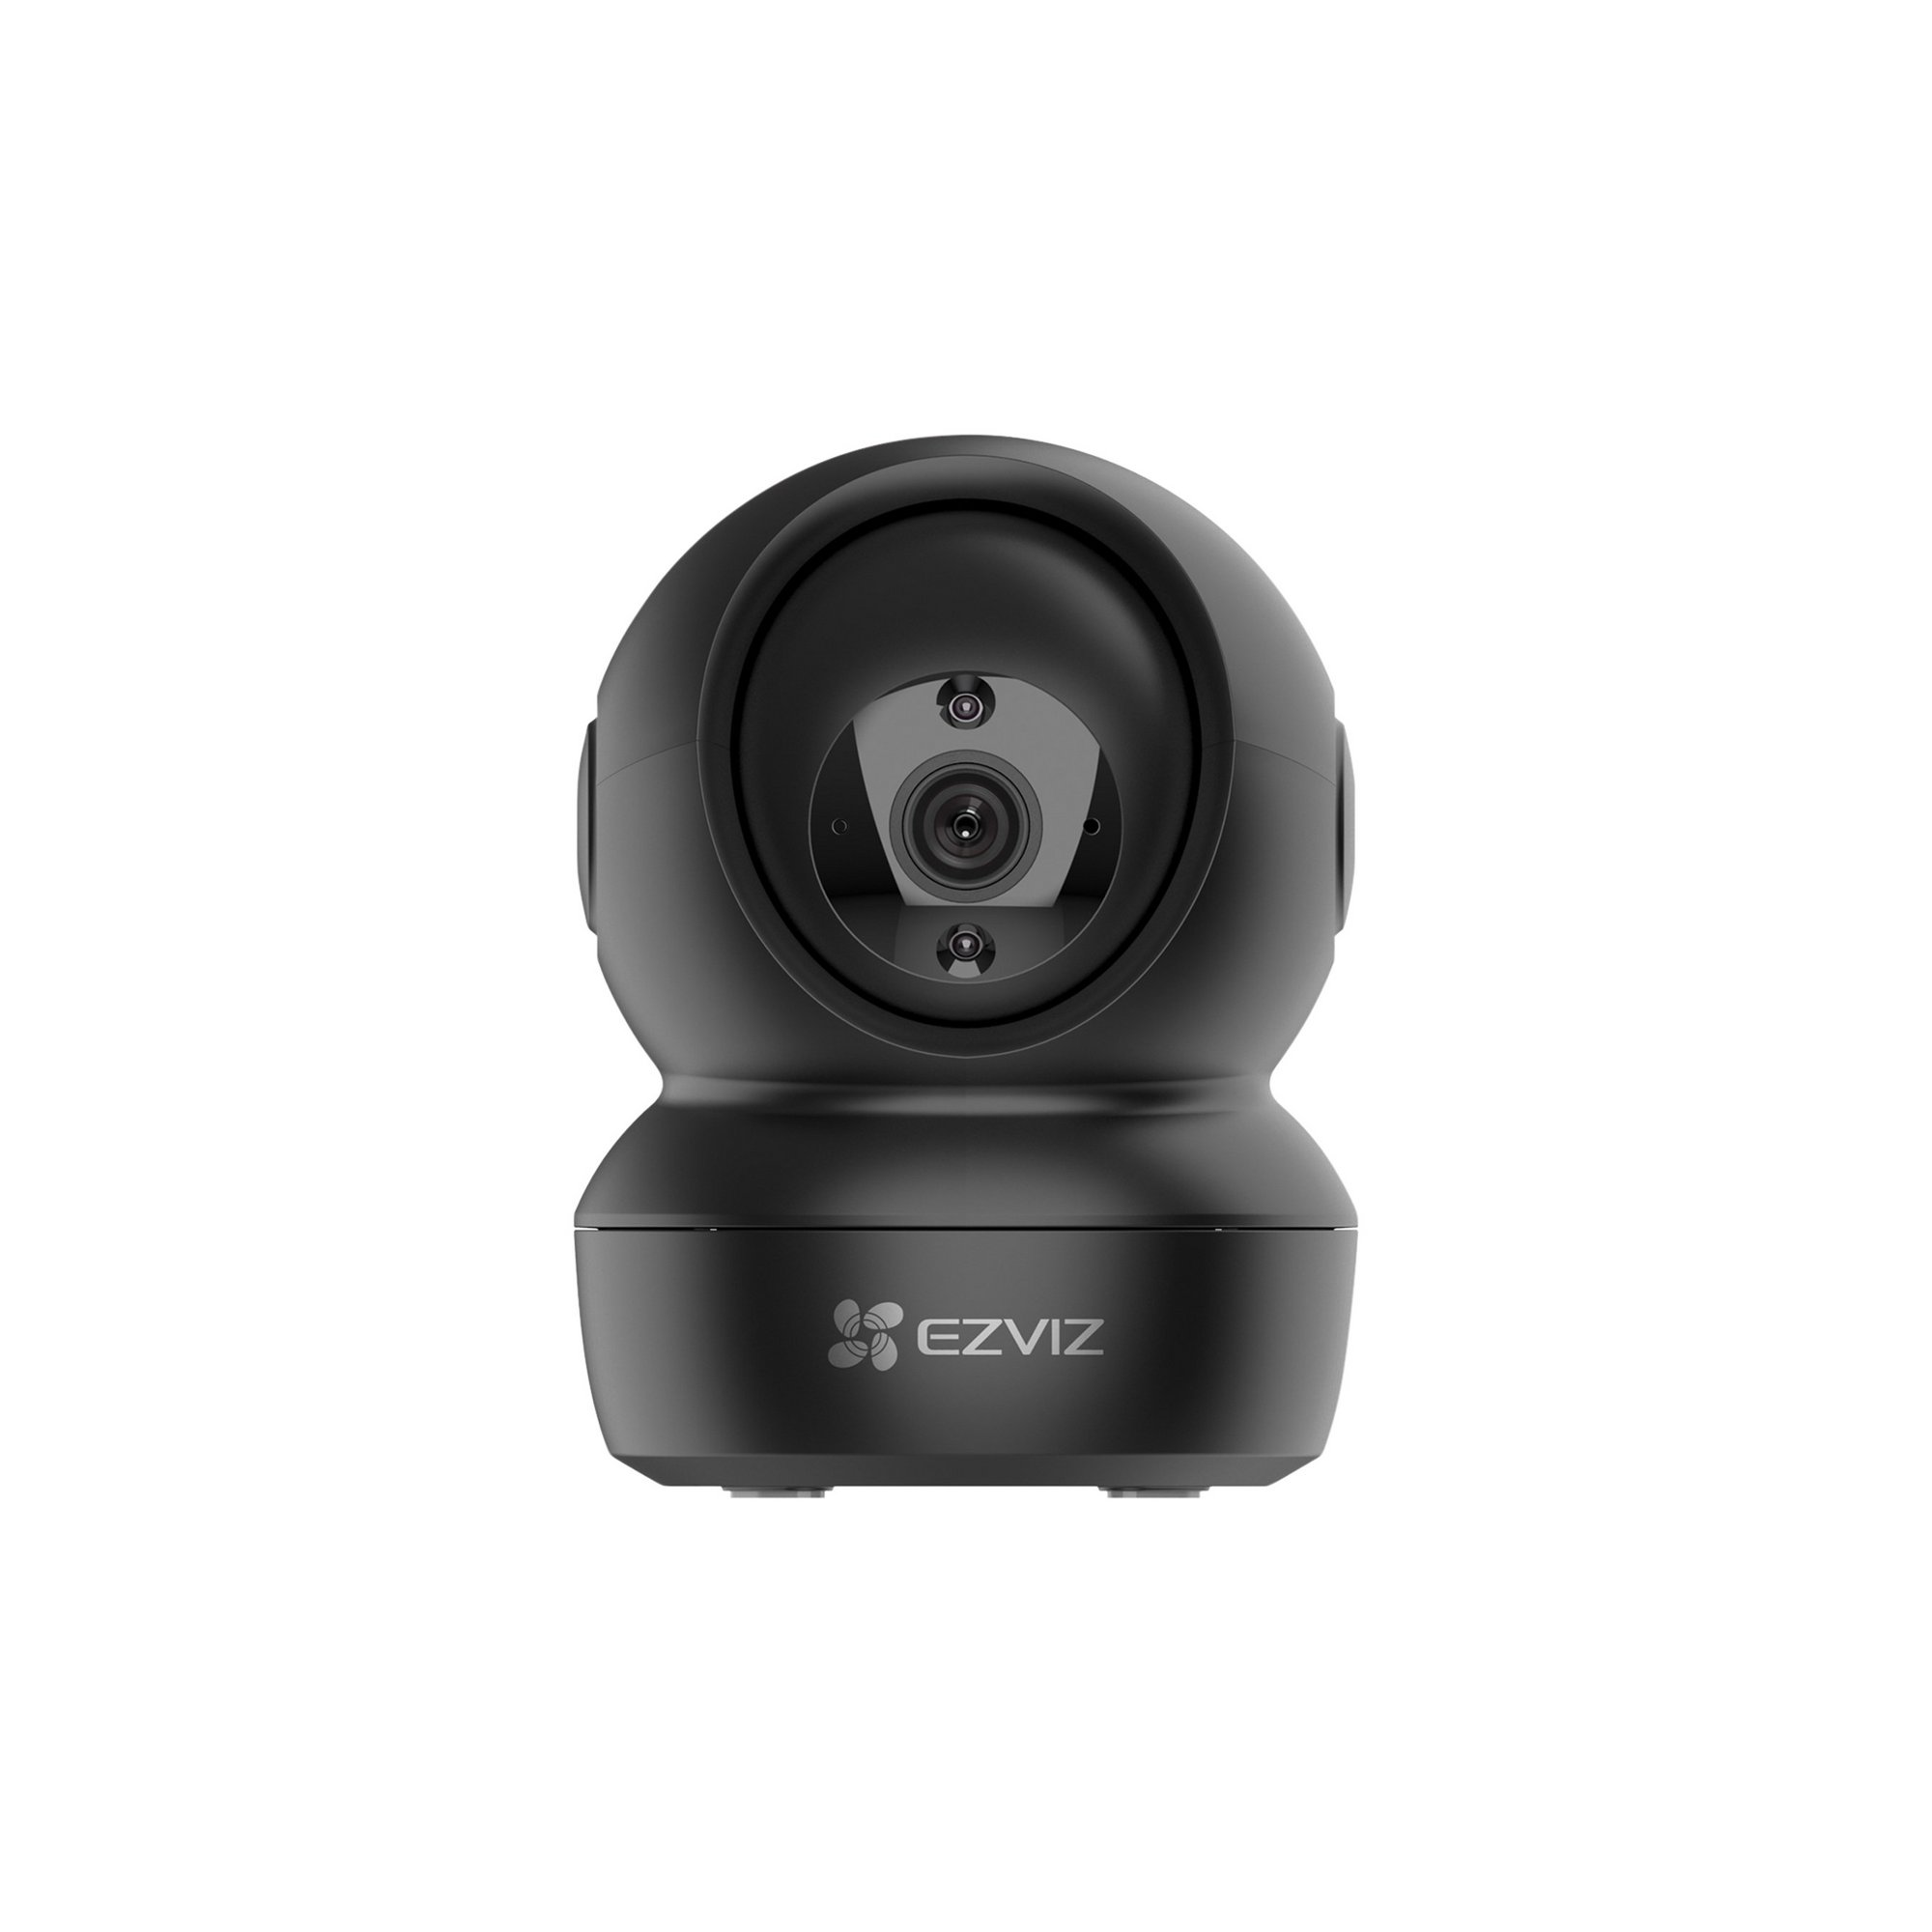 Image of EZVIZ C6N Pan/Tilt Smart Indoor Camera